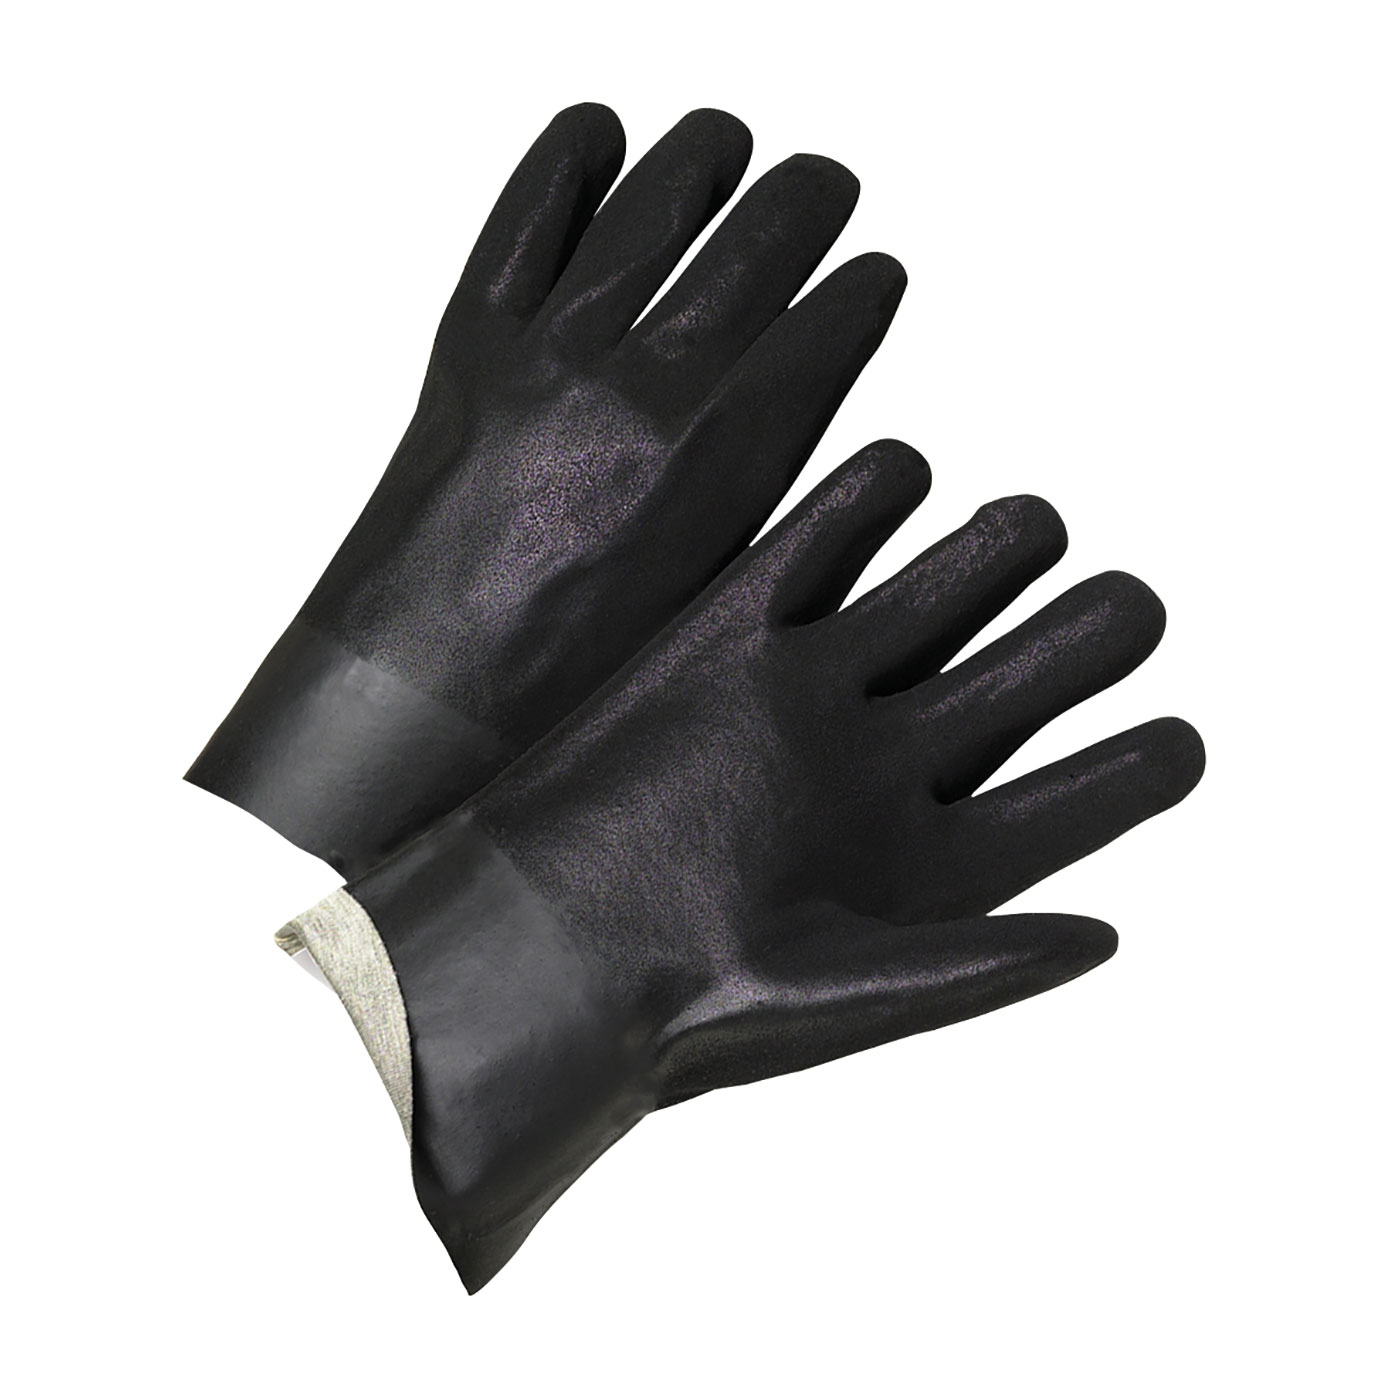 "PVC Dipped Glove with Interlock Liner and Rough Finish - 10"", Black, L"